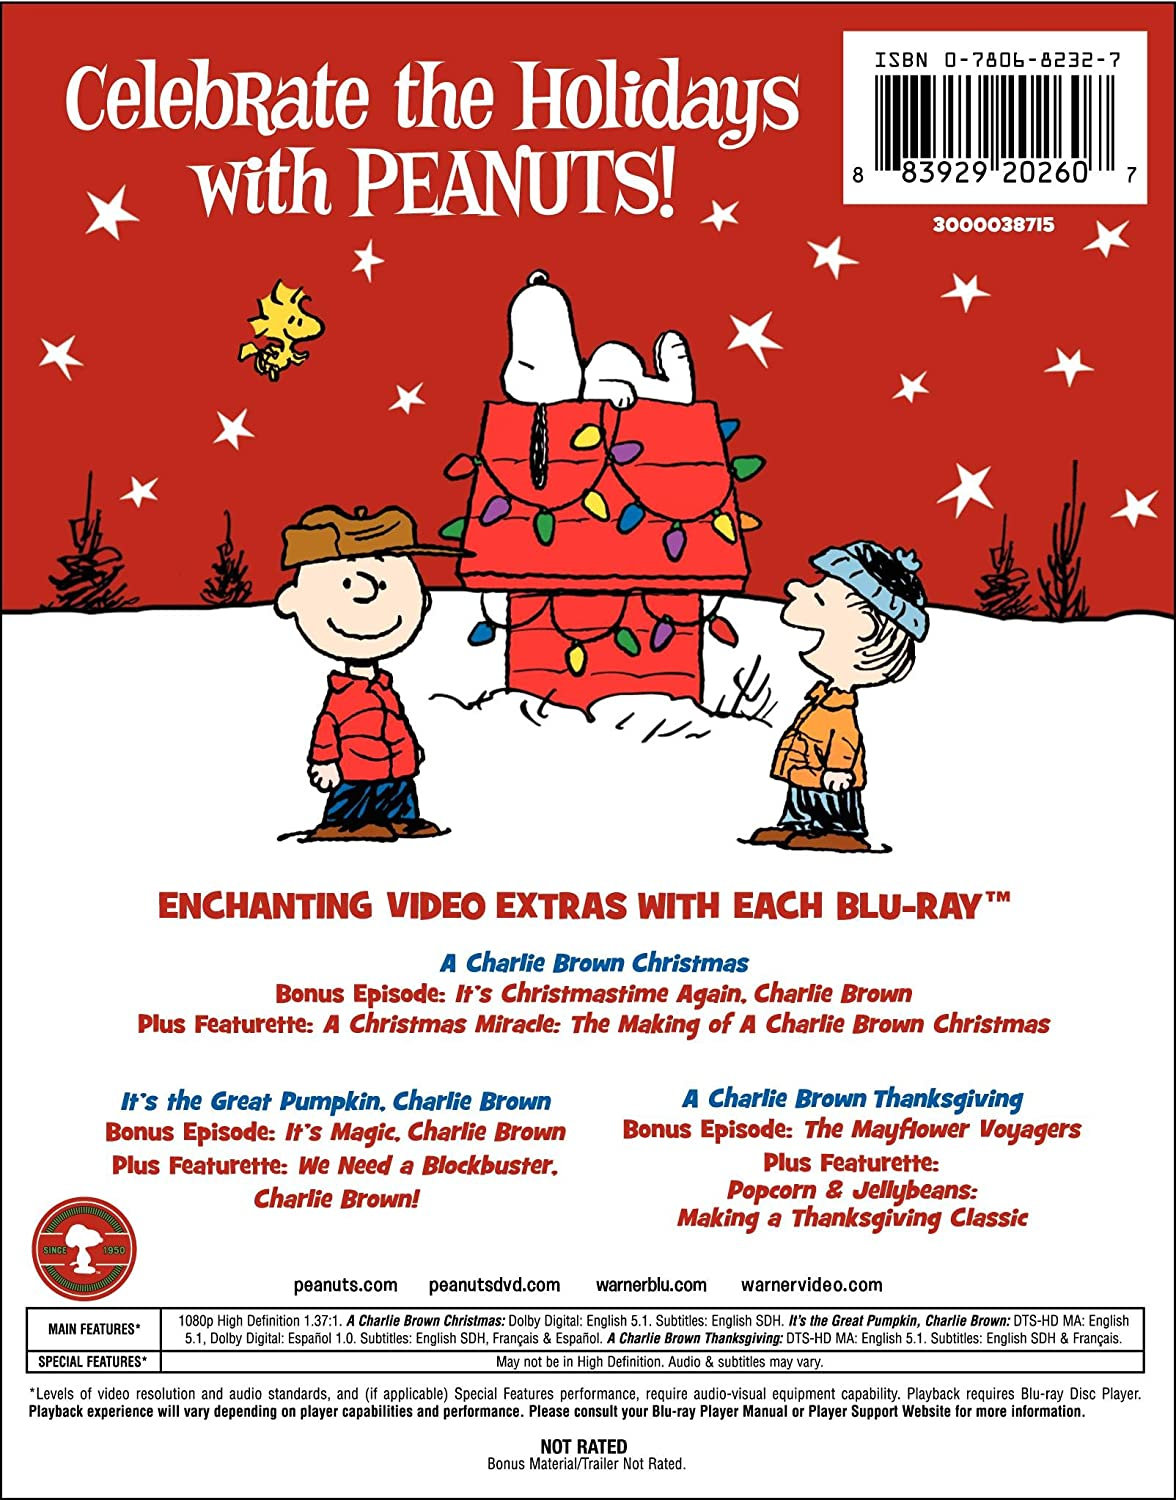 Amazon.com: Peanuts Holiday Collection (It's the Great Pumpkin ...